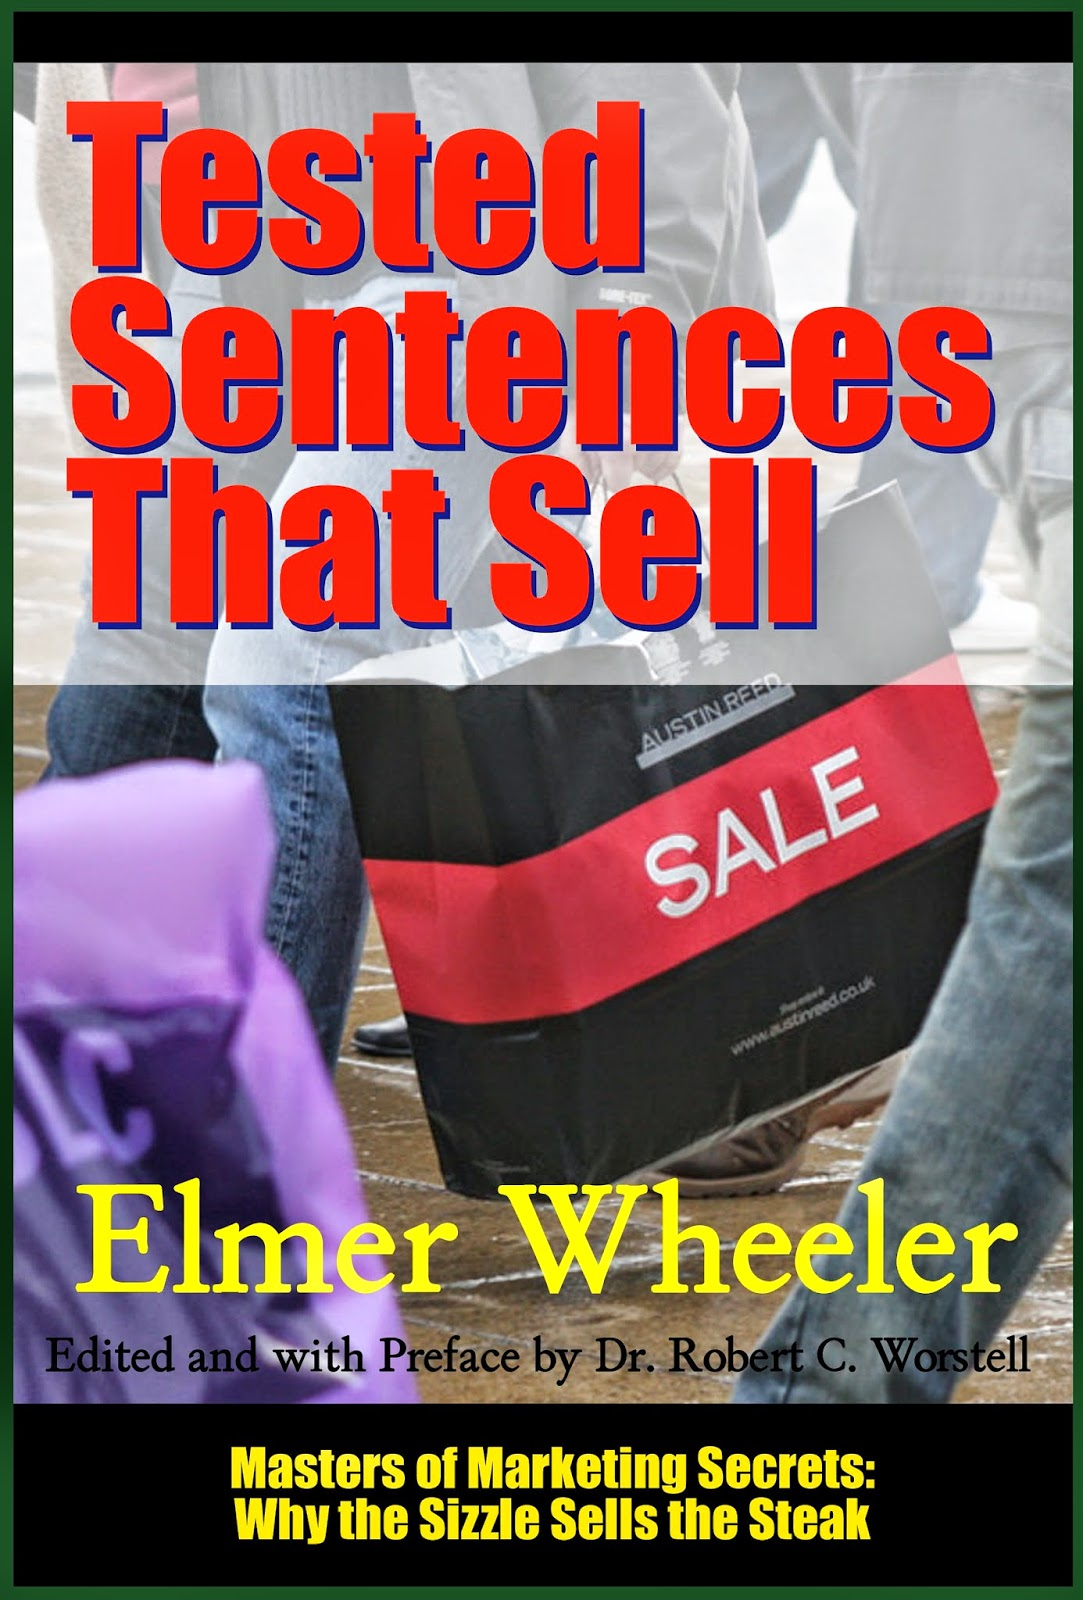 Tested Sentences that Sell by Elmer Wheeler - now available as ebook and paperback